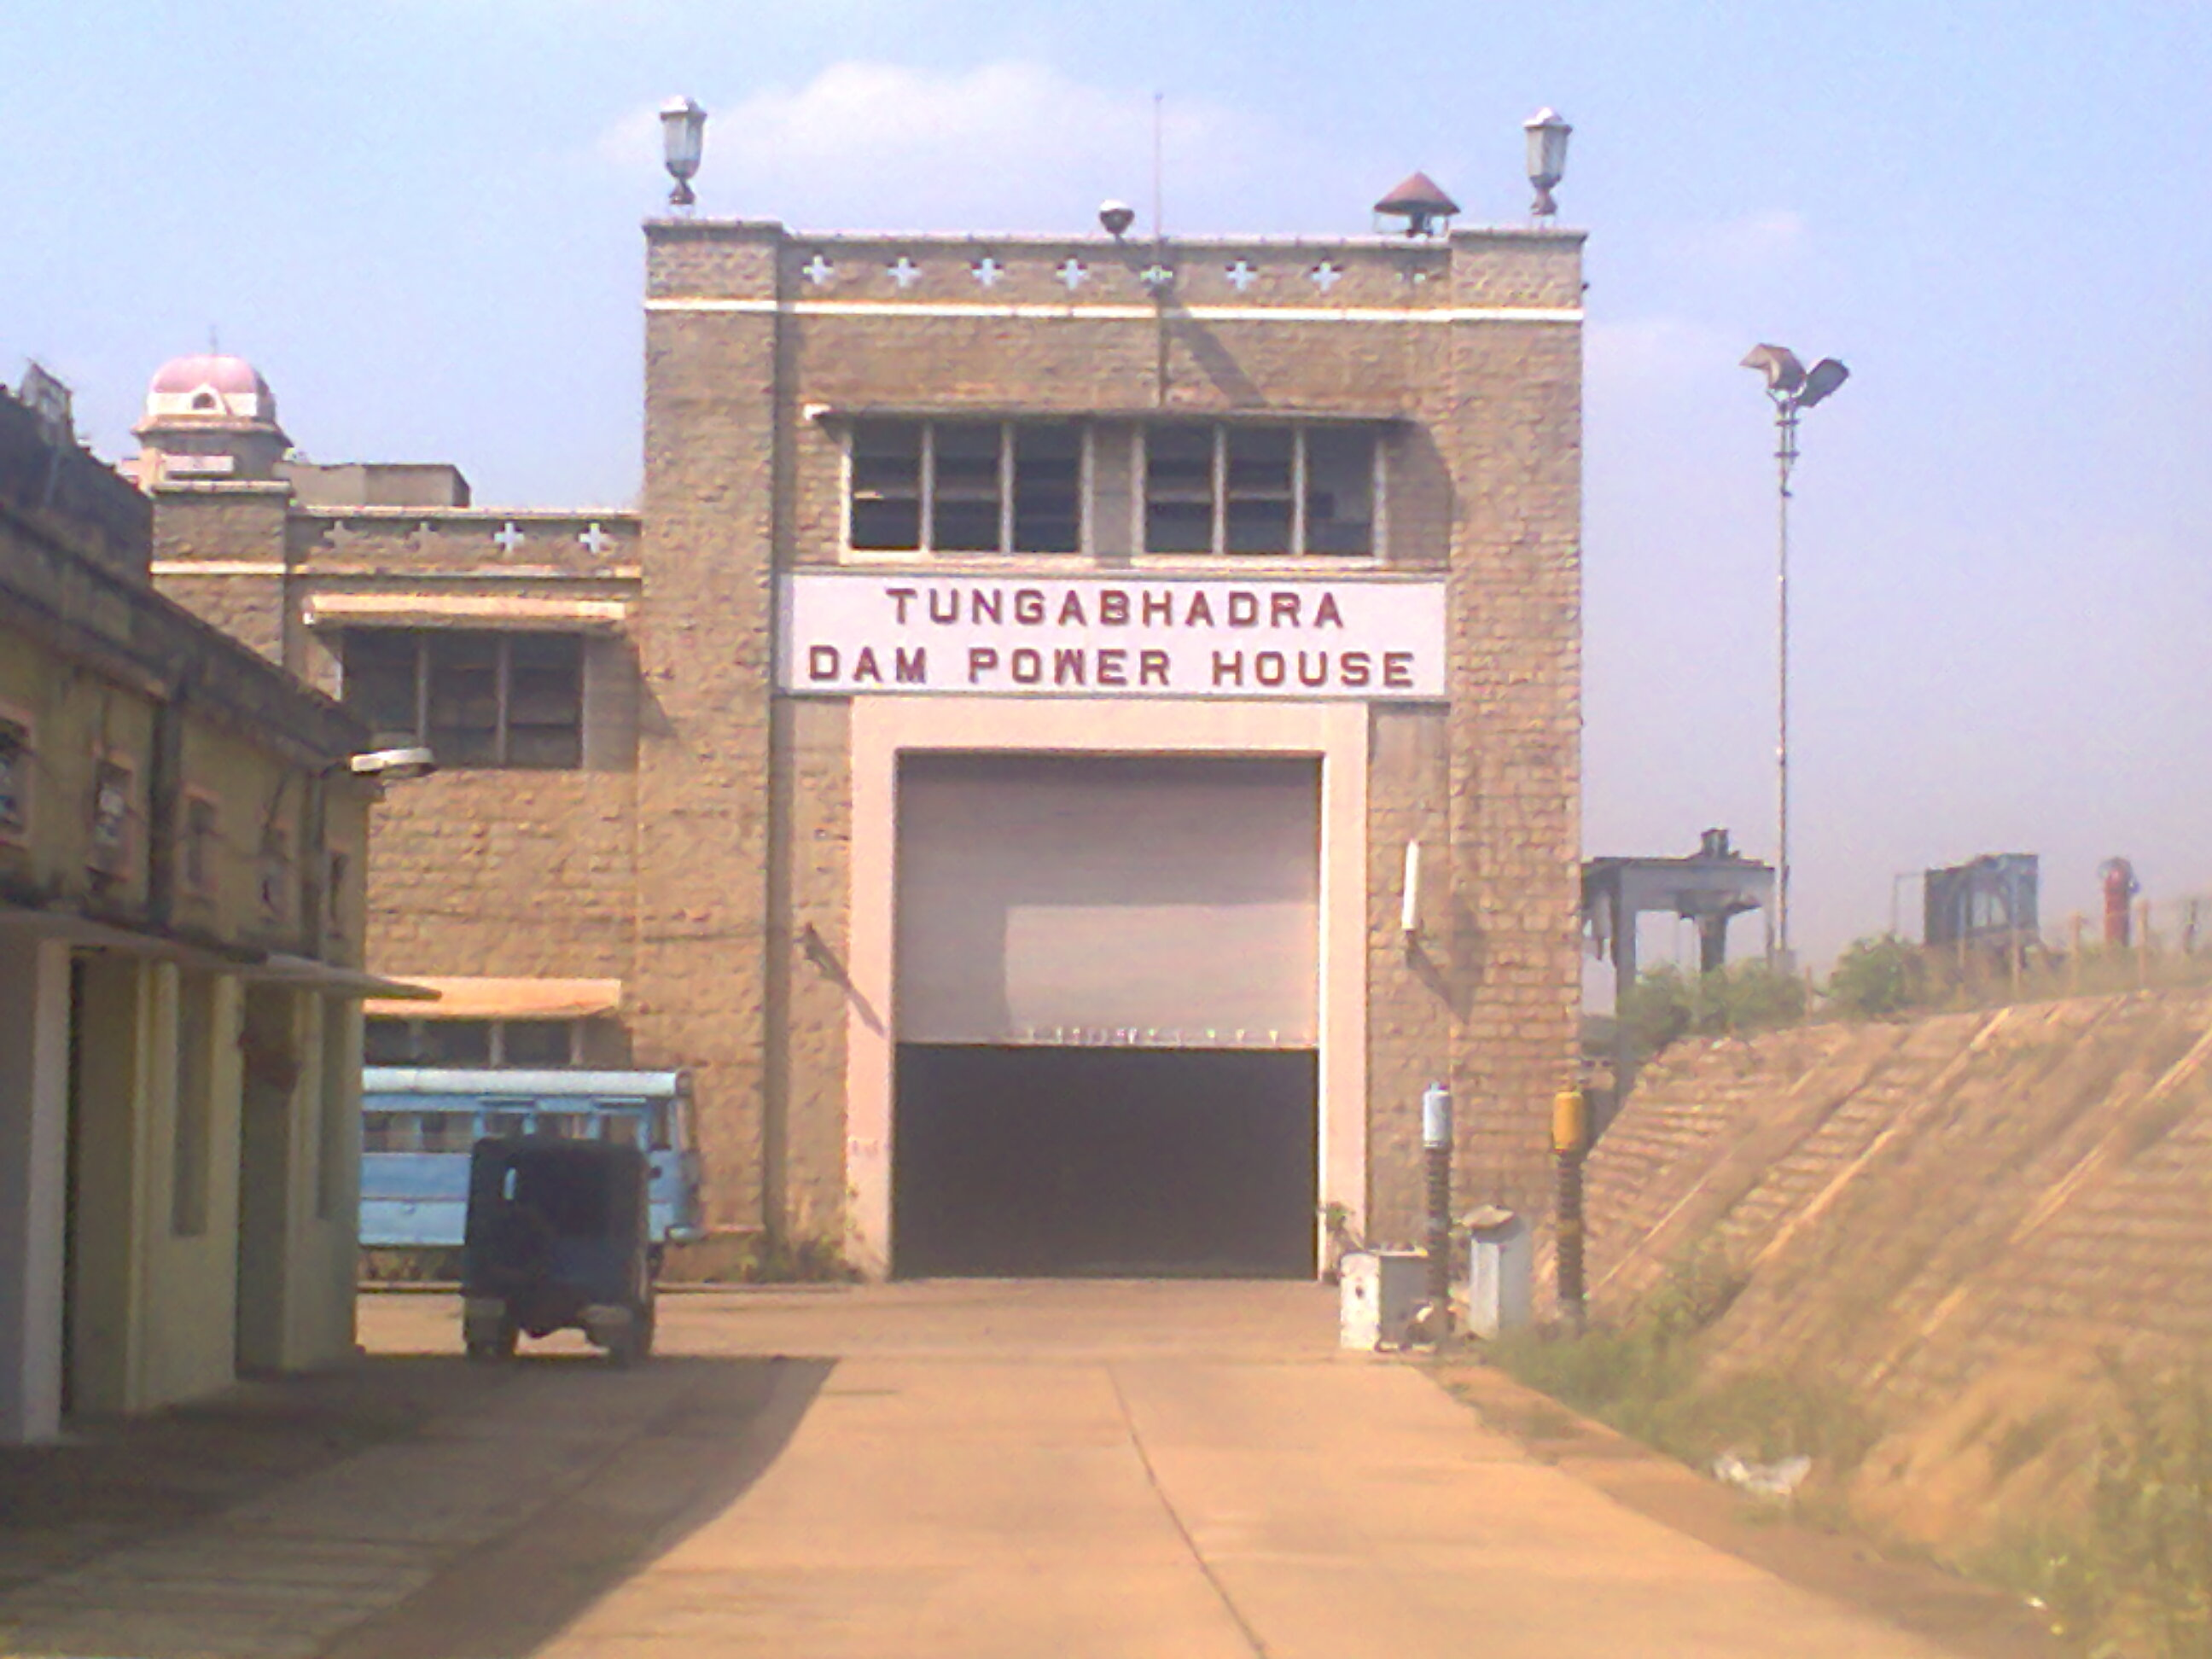 Tungabhadra Dam Power House PH01435.